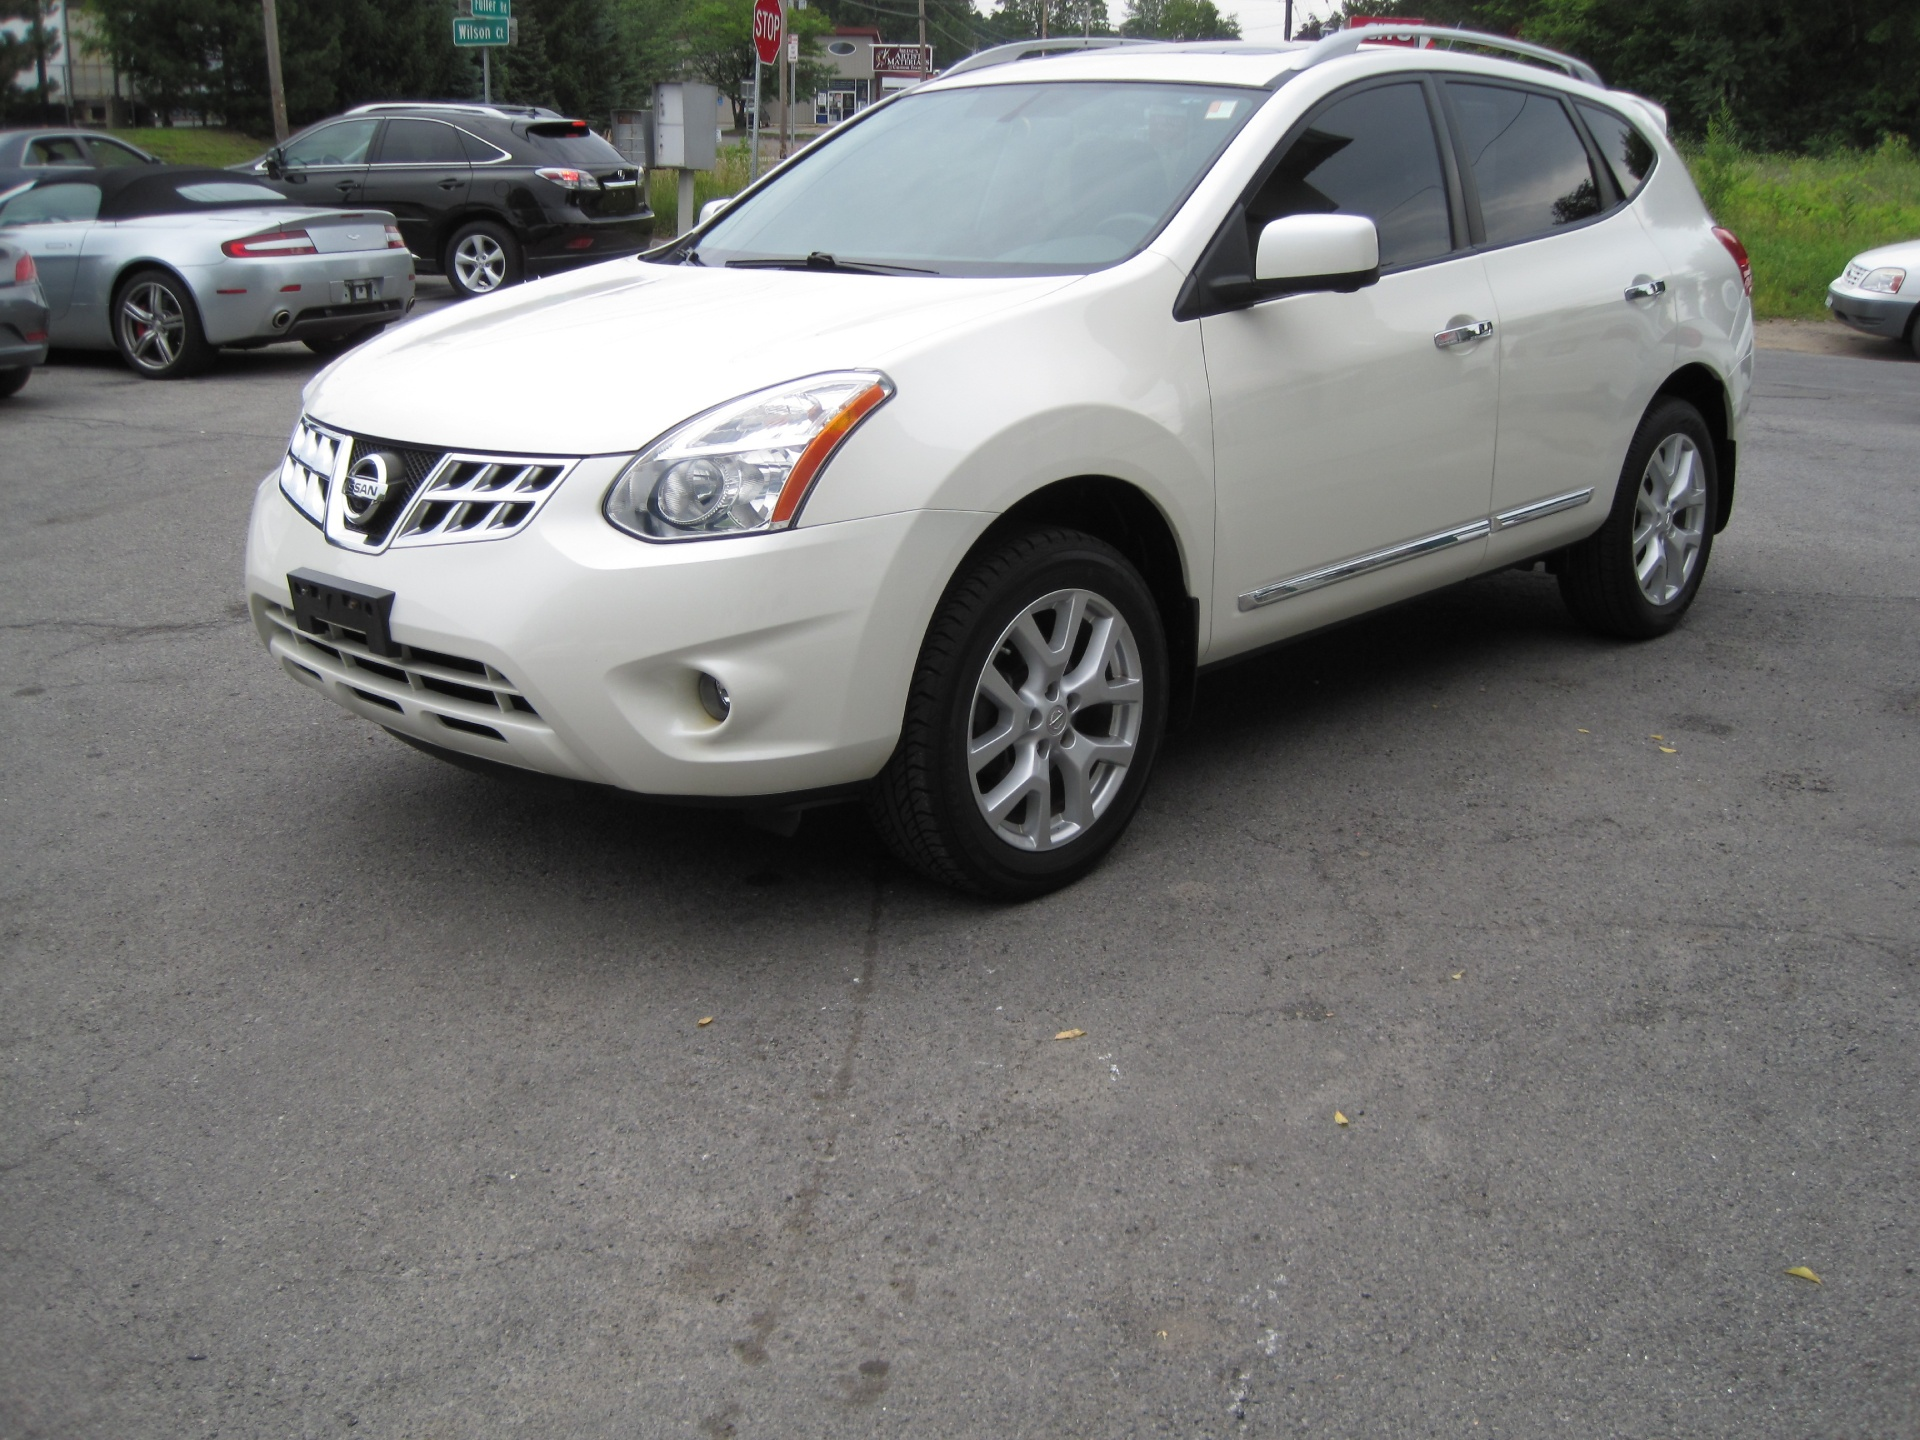 2012 nissan rogue sv w sl package awd loaded bose navigation hid xenons leather htd seats stock. Black Bedroom Furniture Sets. Home Design Ideas